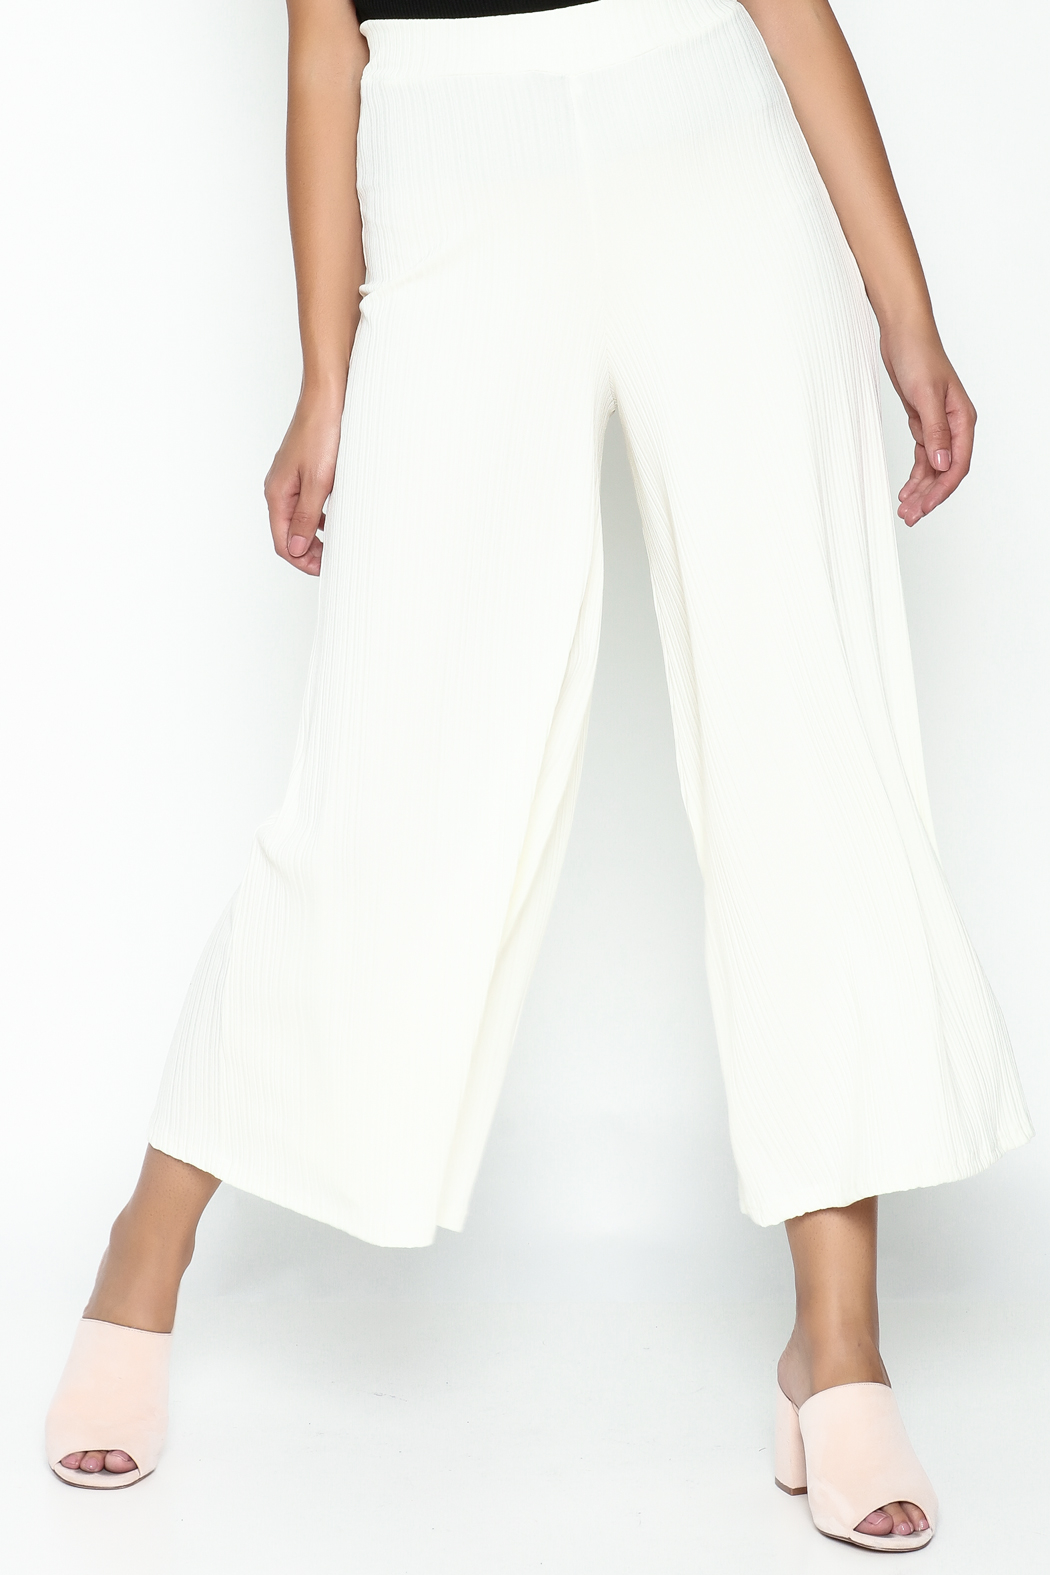 Pinkyotto Ribbed Knit Palazzo Pants - Main Image